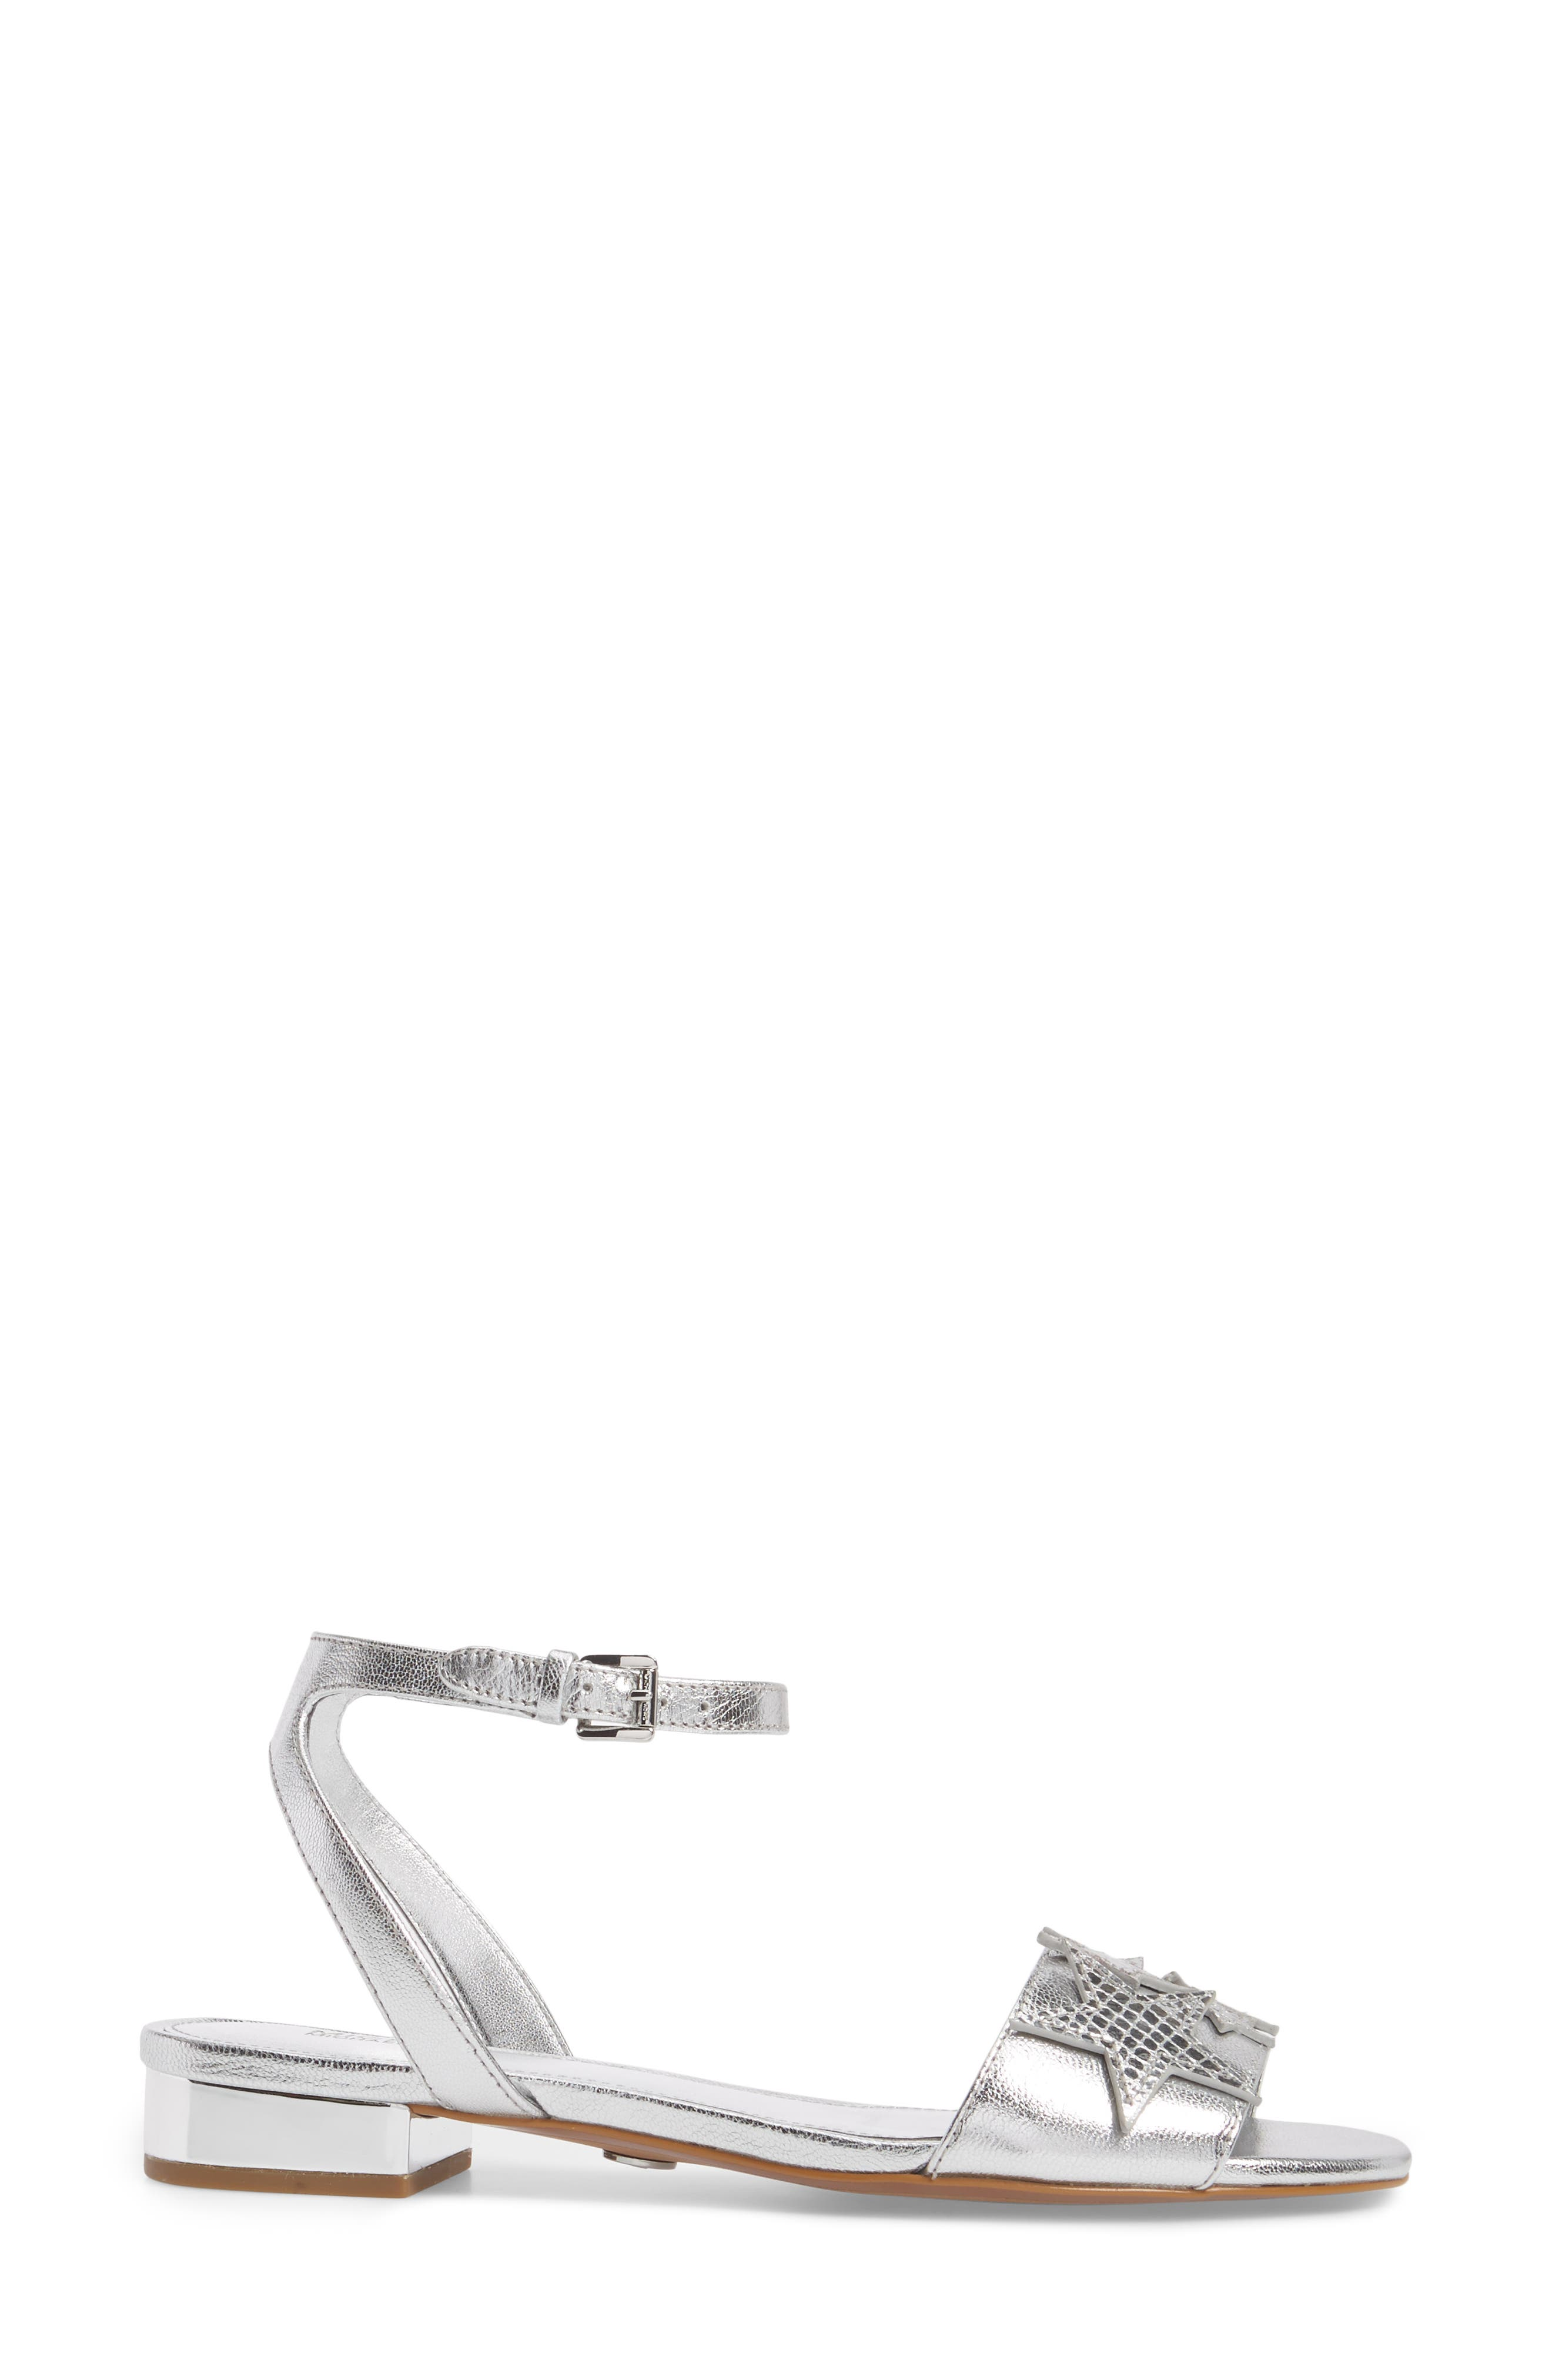 Lexie Star Embellished Sandal,                             Alternate thumbnail 3, color,                             Silver Nappa Leather